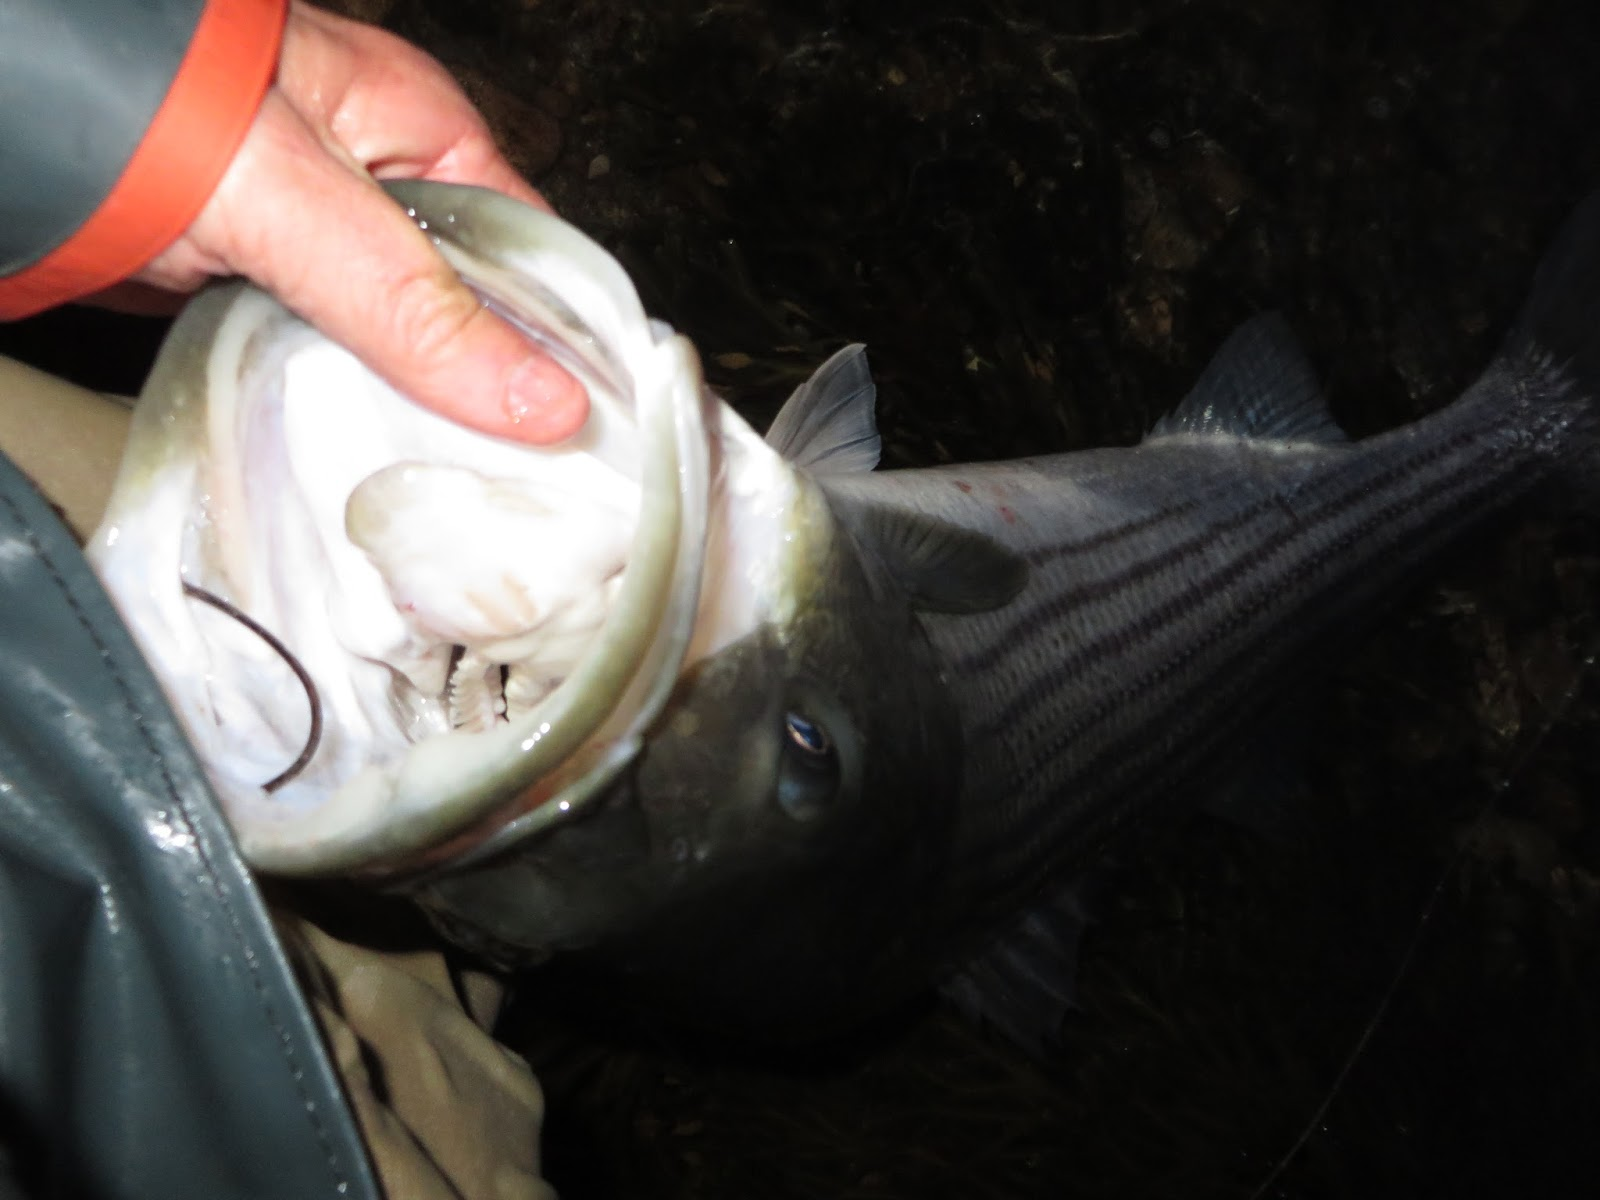 Rhode island striped bass november 2015 i fished a lot in november and was able to land only one decent fish of 40 inches geenschuldenfo Image collections